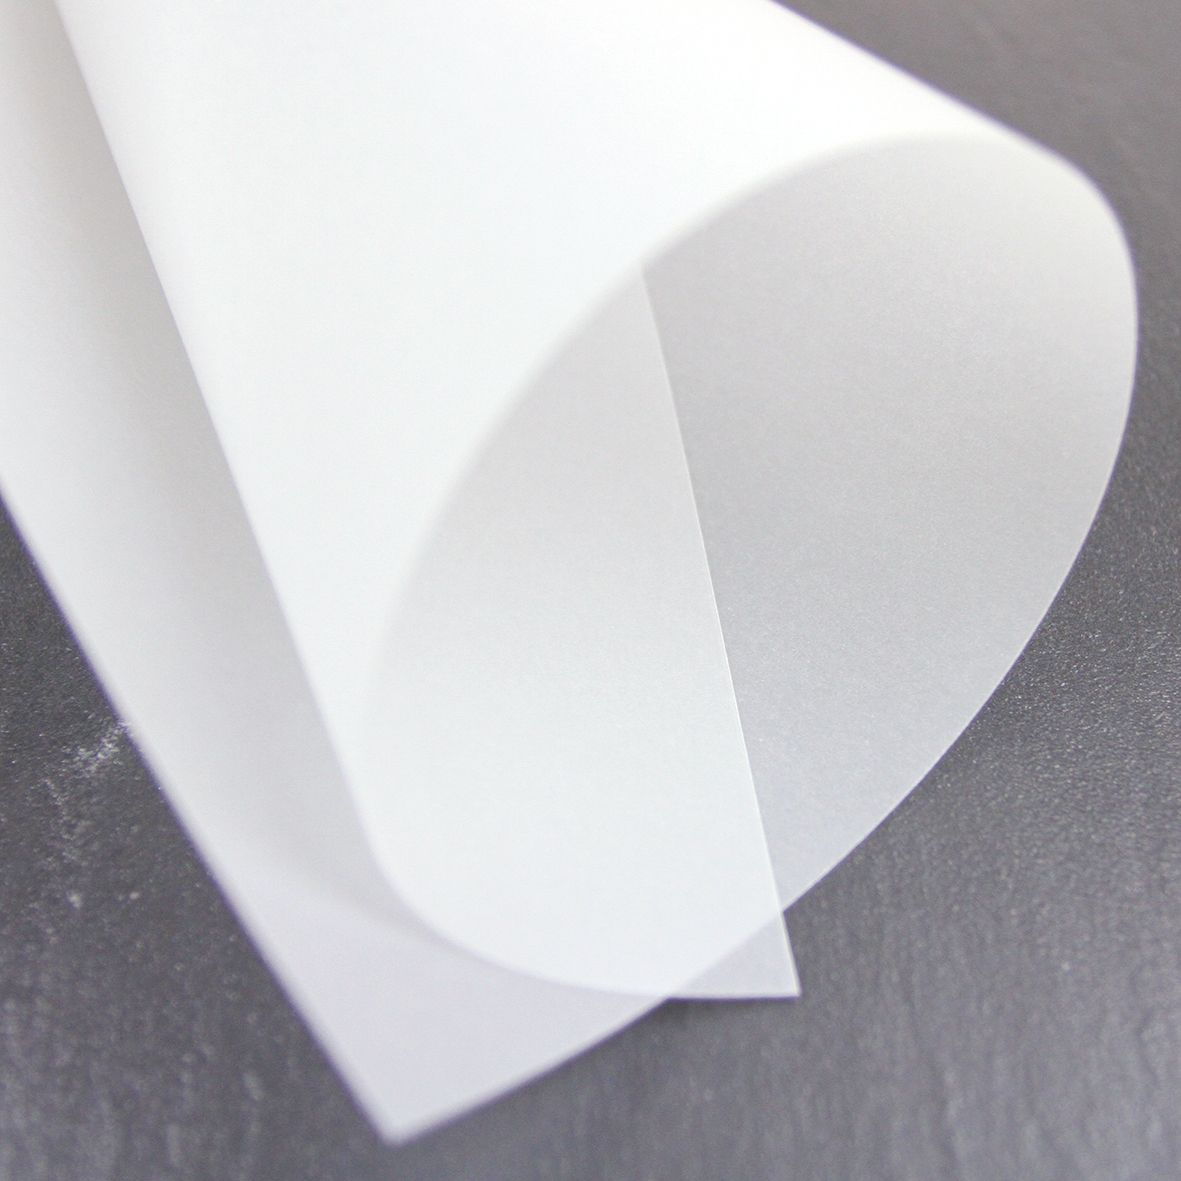 Vellum and Translucent Paper category image